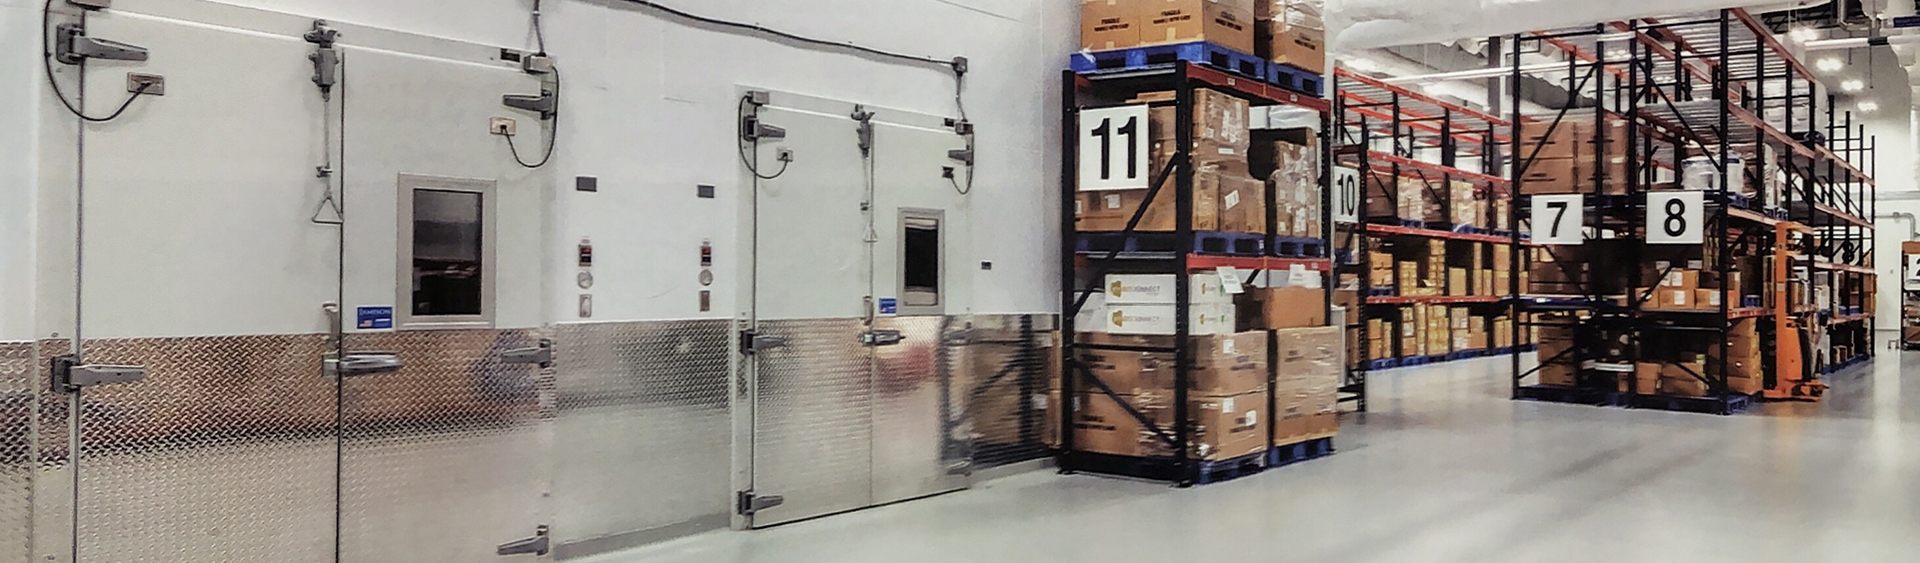 Cold Storage Construction Trends: Jake Stefan Featured in GCCA Cold Facts Magazine 2